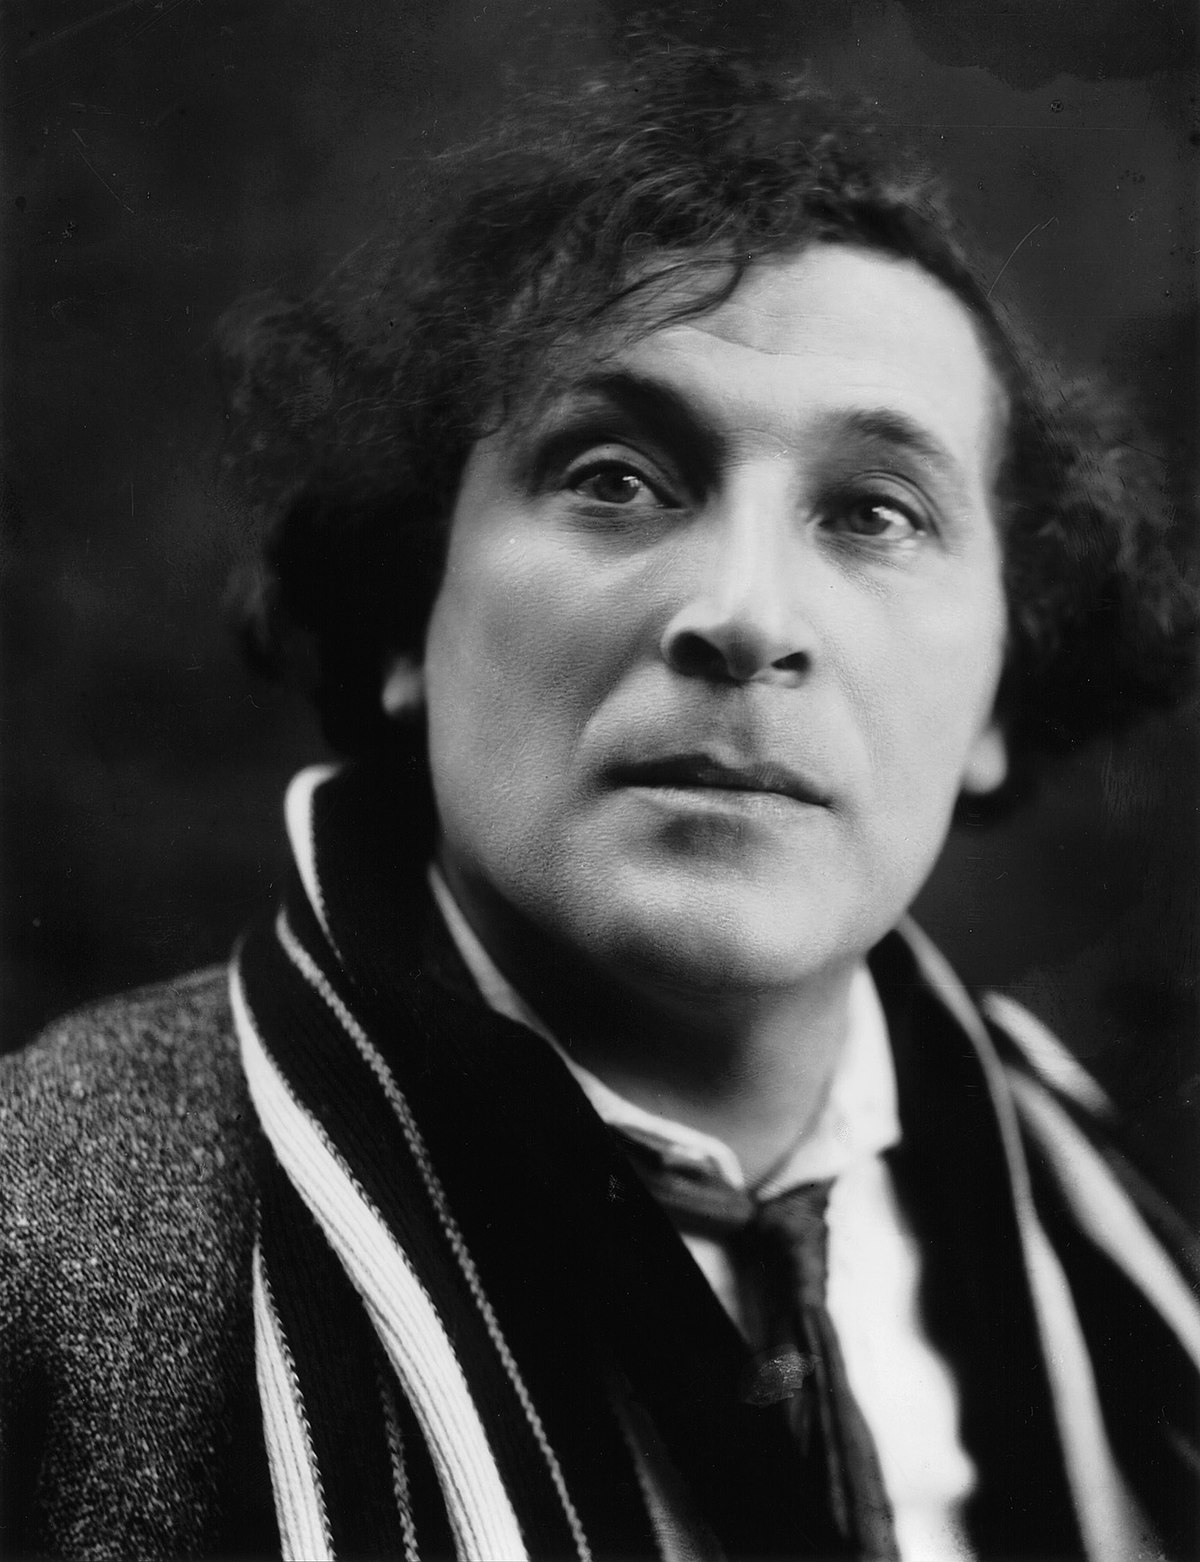 marc chagall quadri famosi : marc chagall known for :  marc chagall les mariés de la tour eiffel en 2020/2021